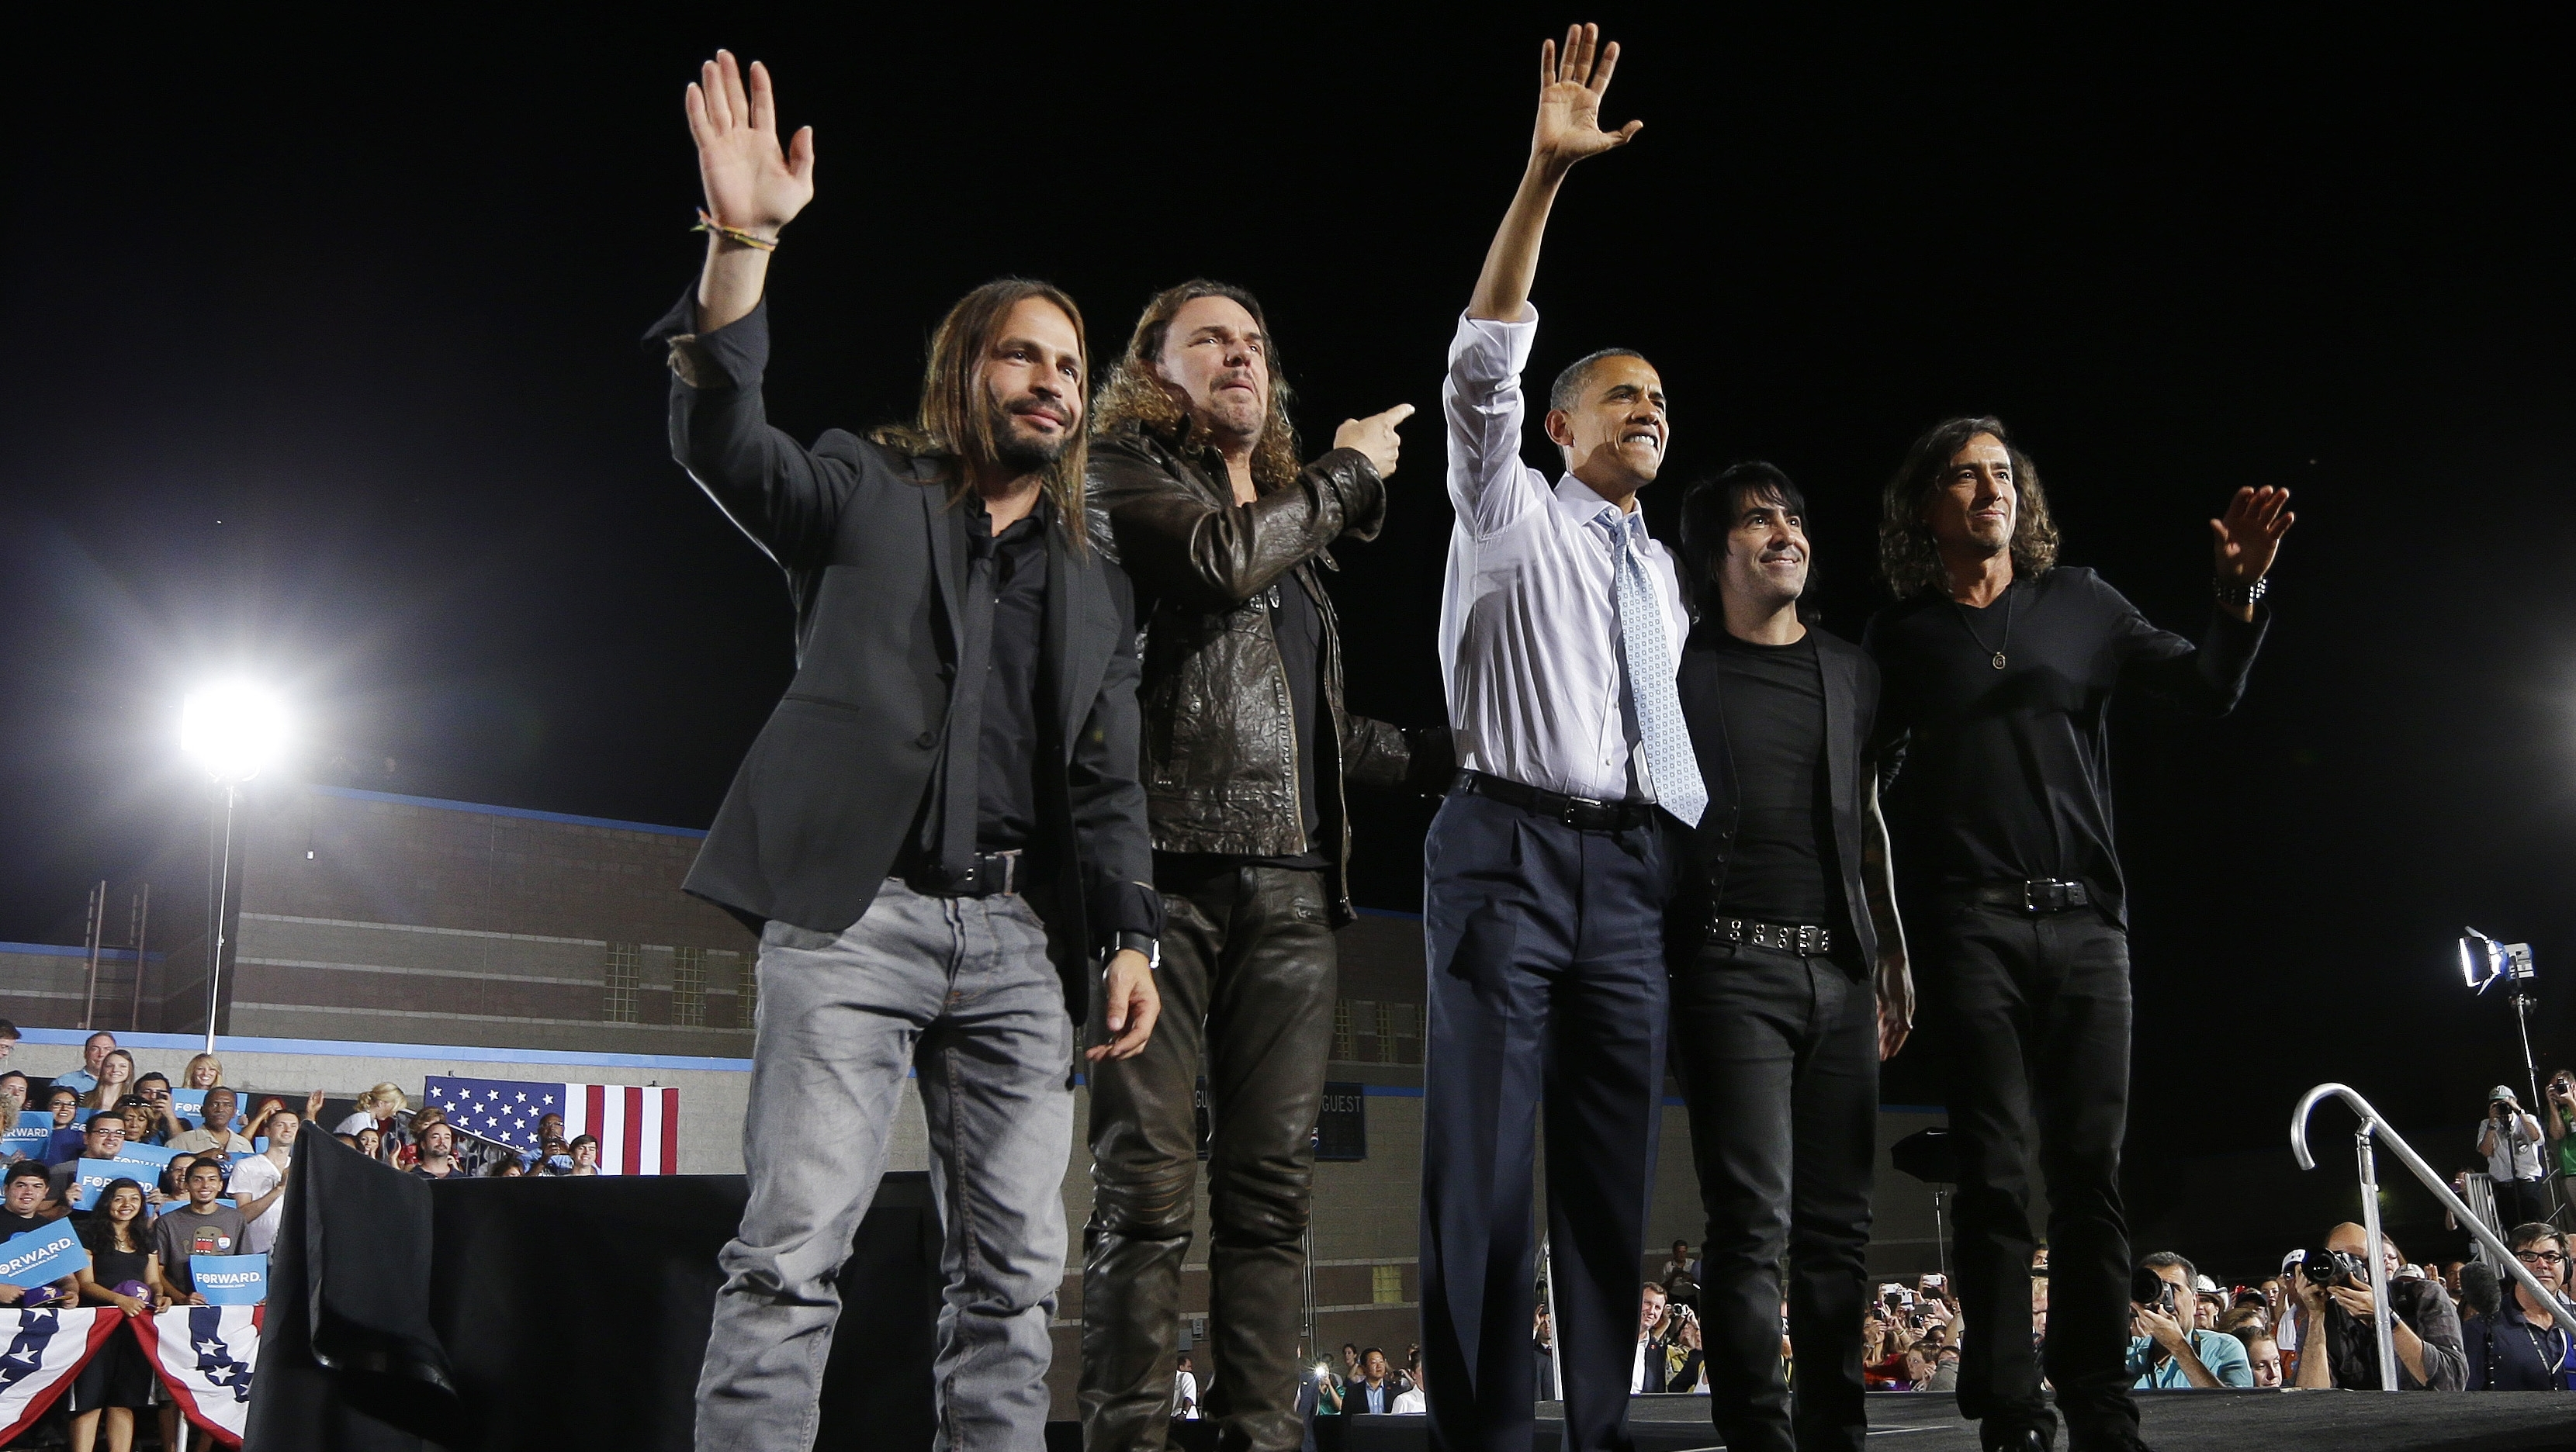 PHOTO: President Barack Obama, center, on stage with members of the Mexican Rock Band Mana, during a campaign event in Desert Pines High School, Sunday, Sept. 30, 2012 in Las Vegas.